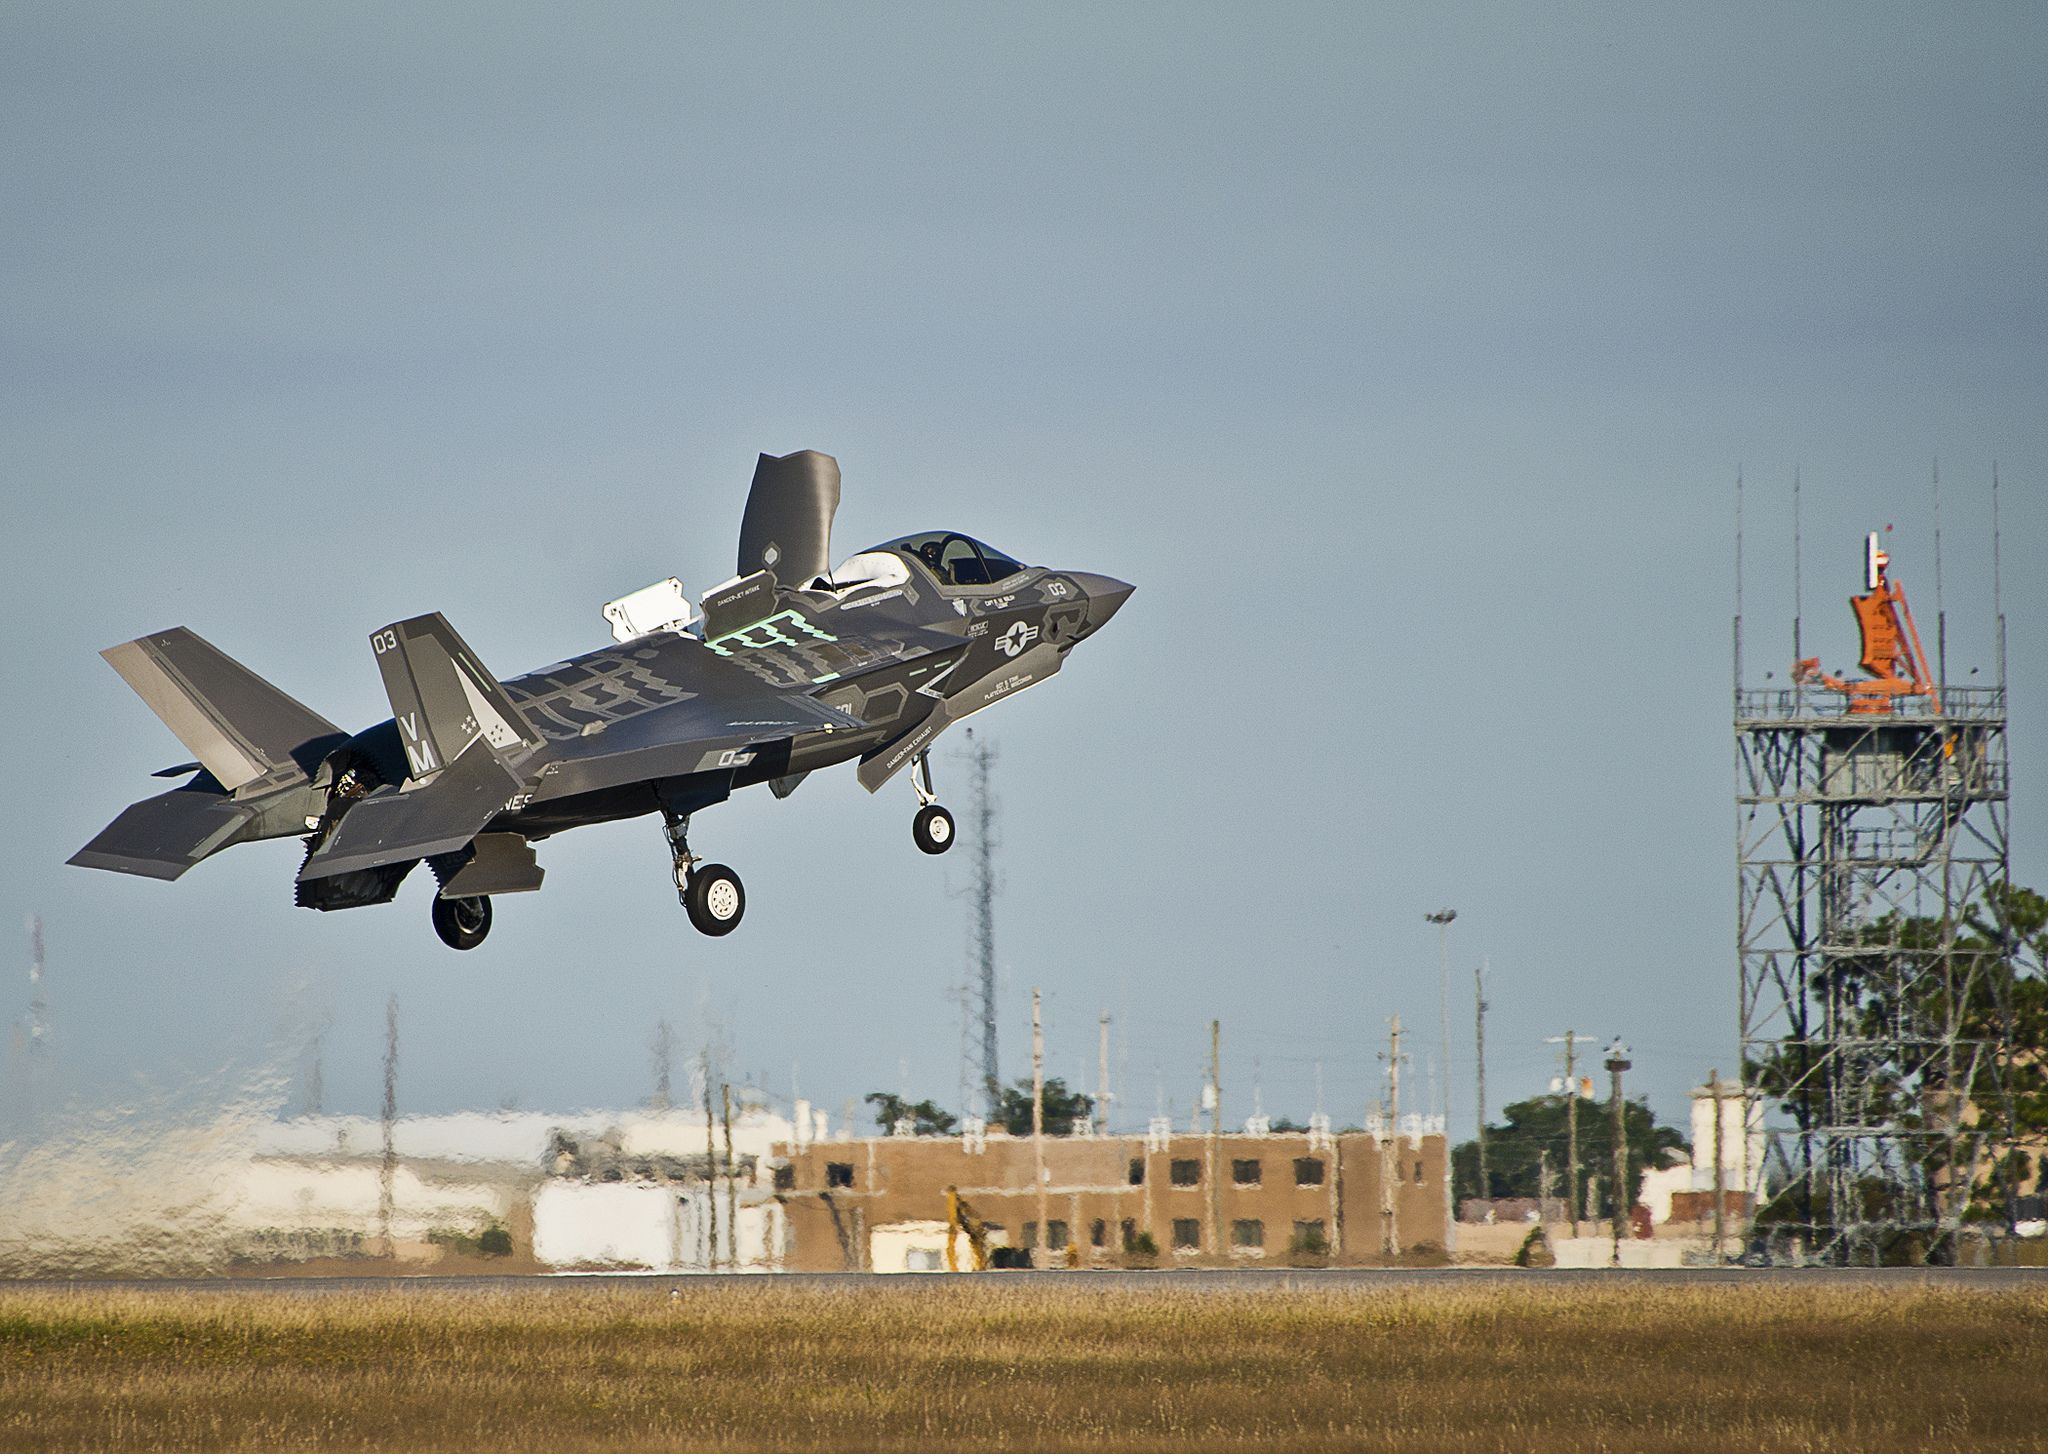 Flight testing of the STOVL propulsion system began on 7 January 2010. The F-35B's first hover was on 17 March 2010, followed by its first vertical landing the next day.